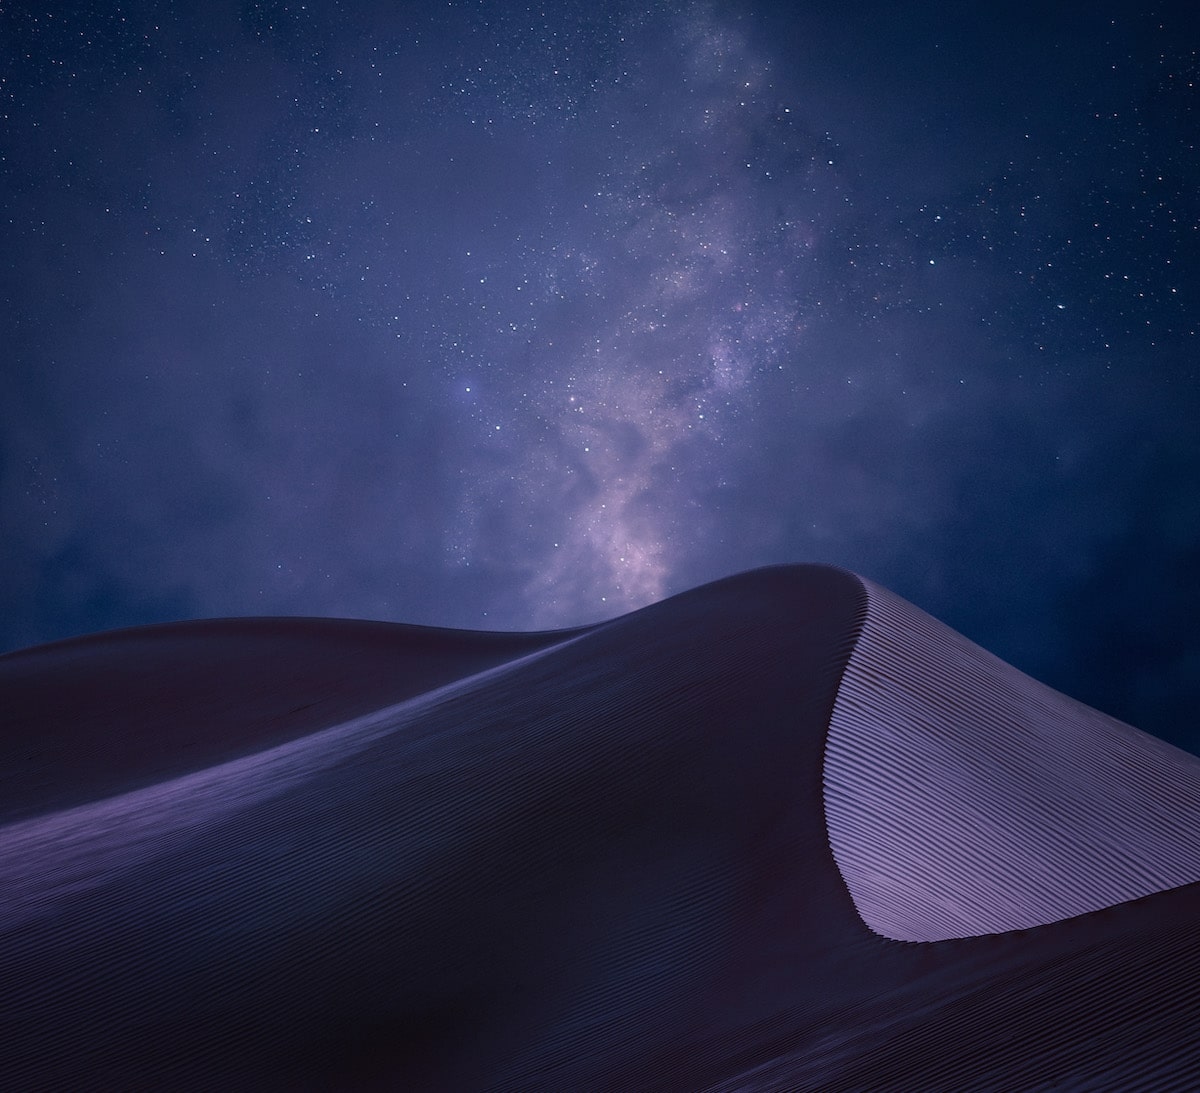 Sharqiya Sands Desert in Oman at Night